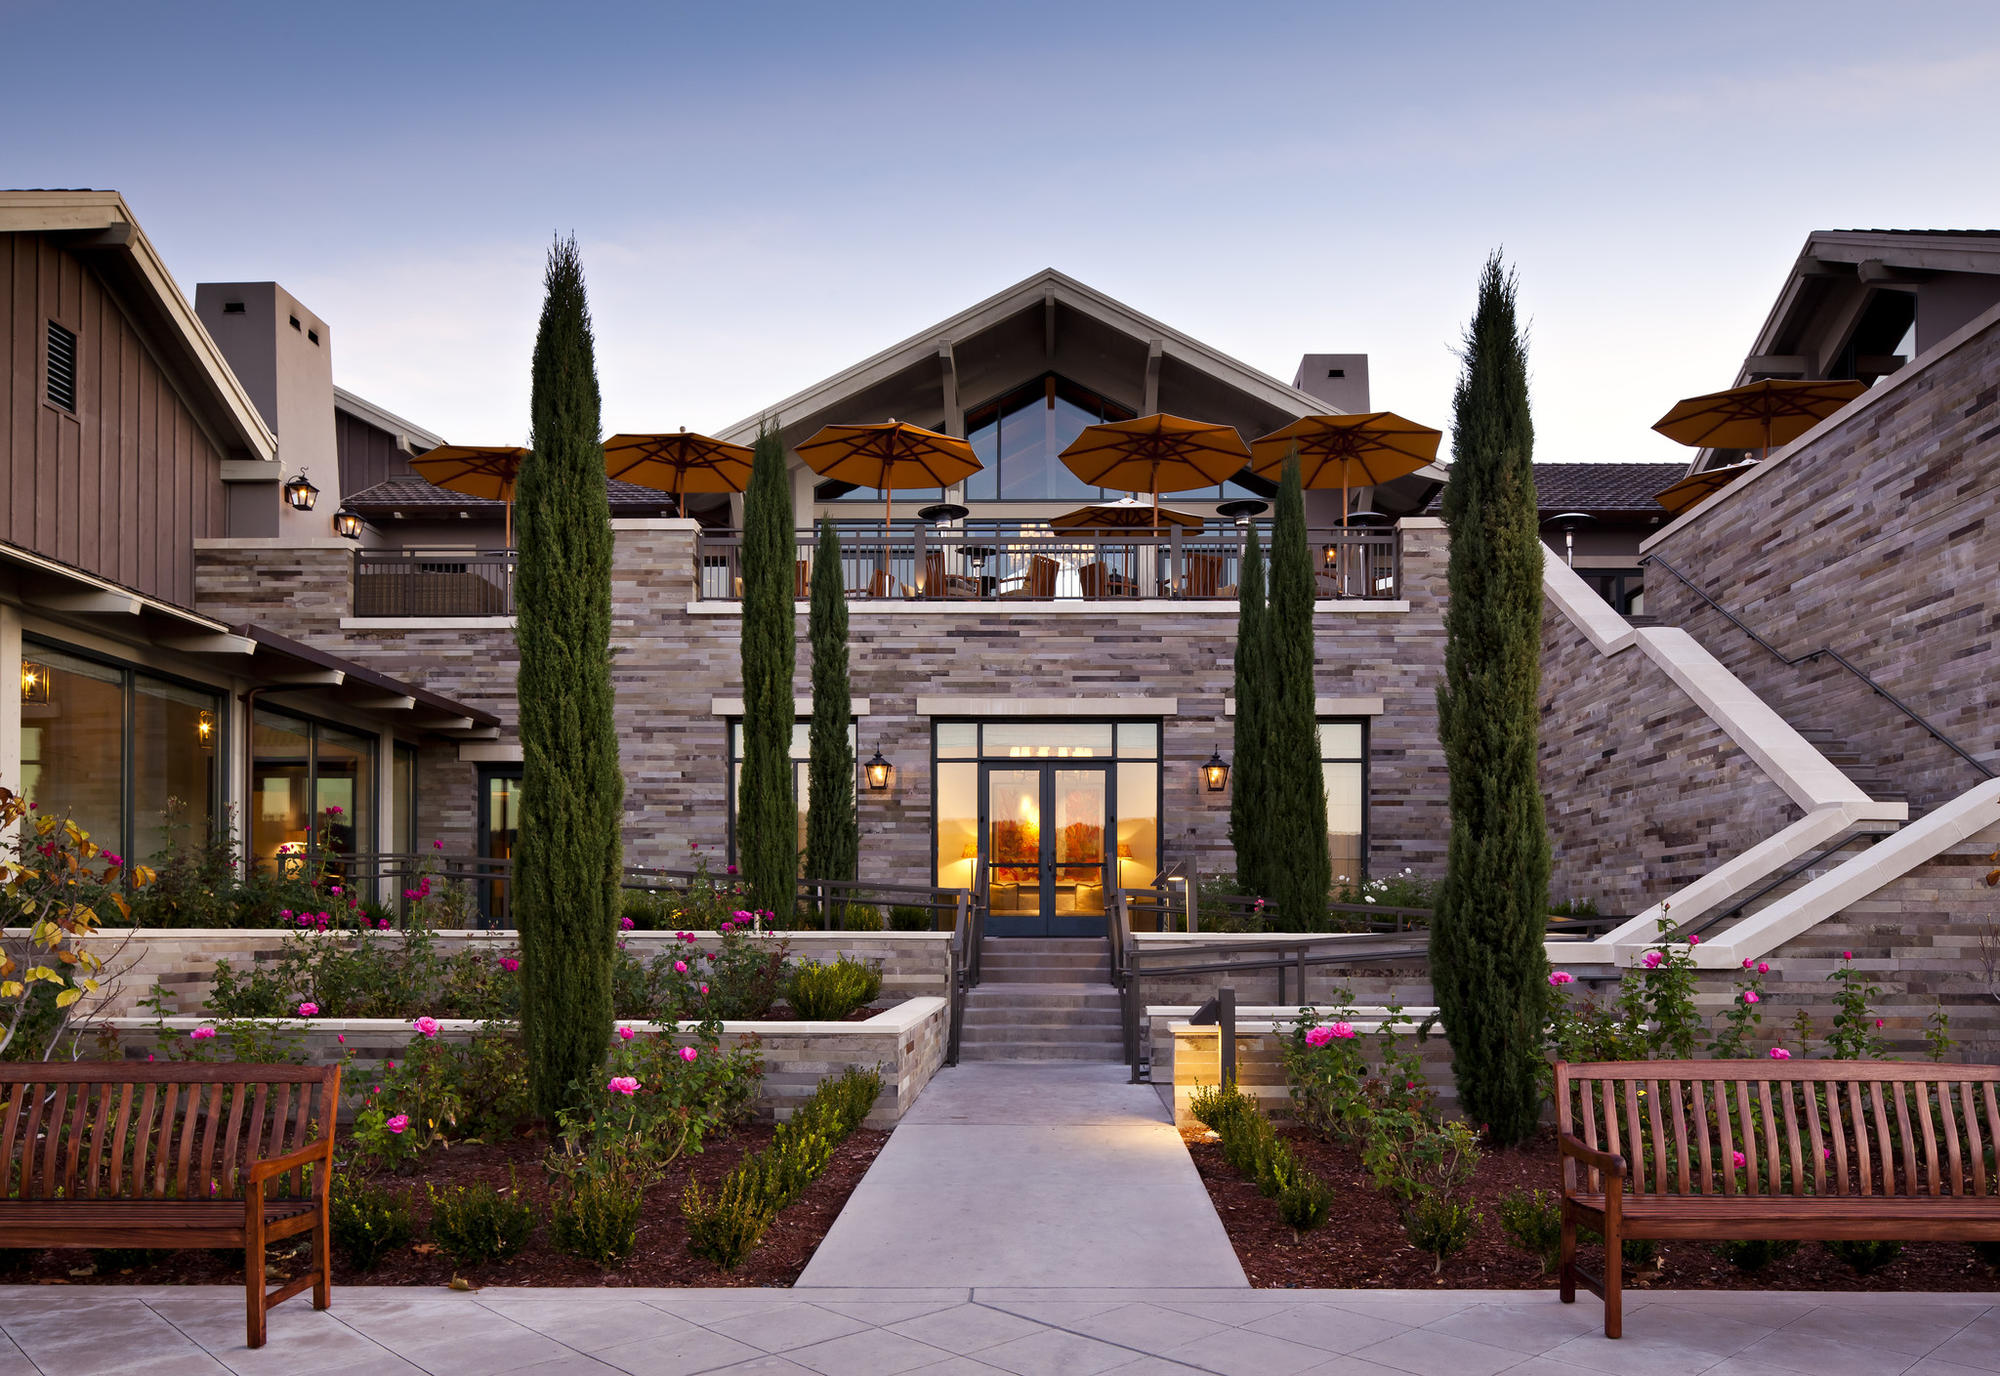 Rosewood Sand Hill in Menlo Park tied for 37th place among the 100 best hotels in the world.